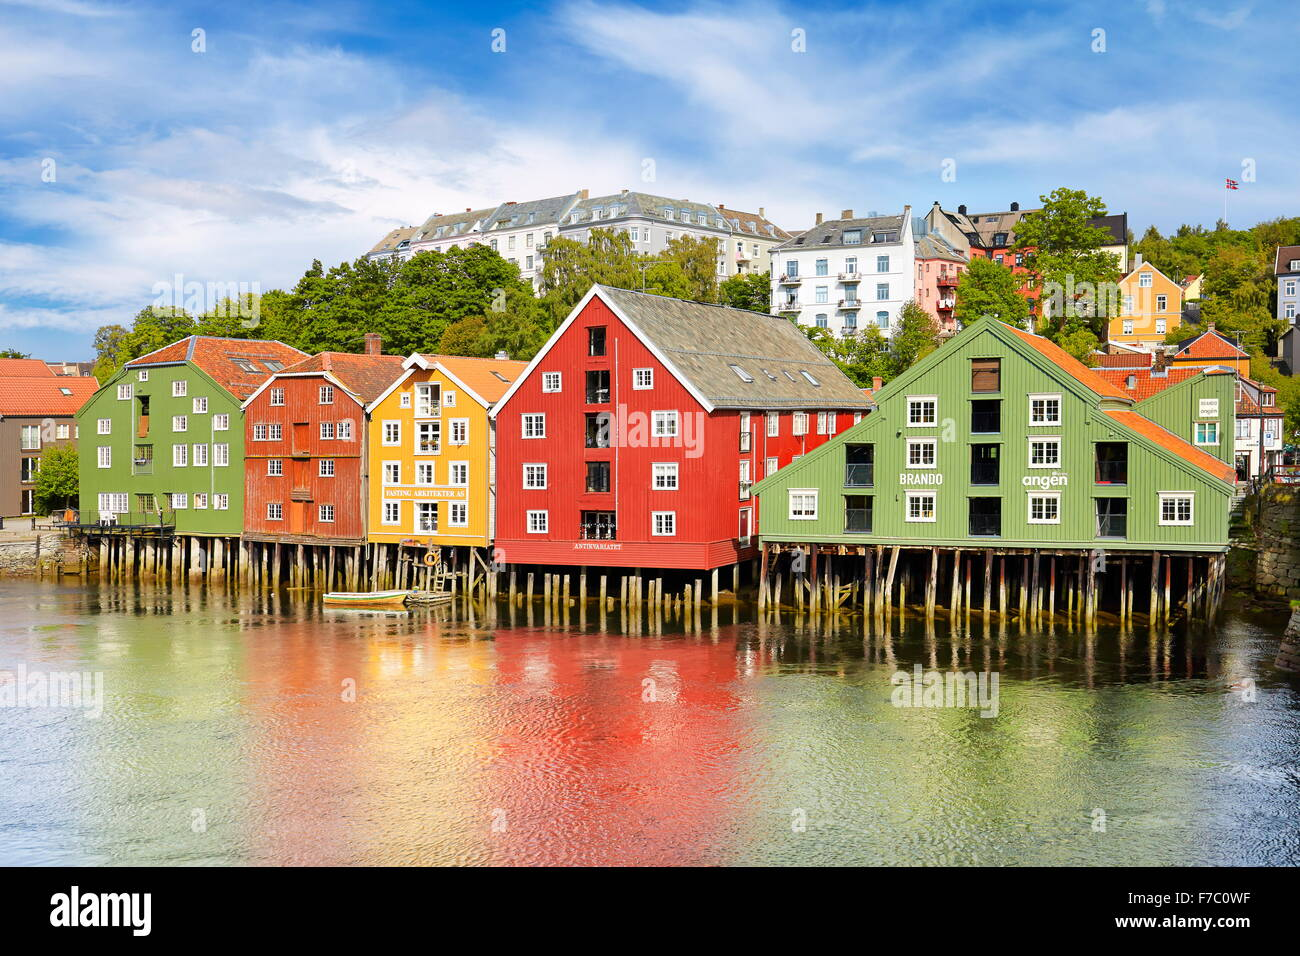 Colorful historic stilt houses in Trondheim, Norway - Stock Image